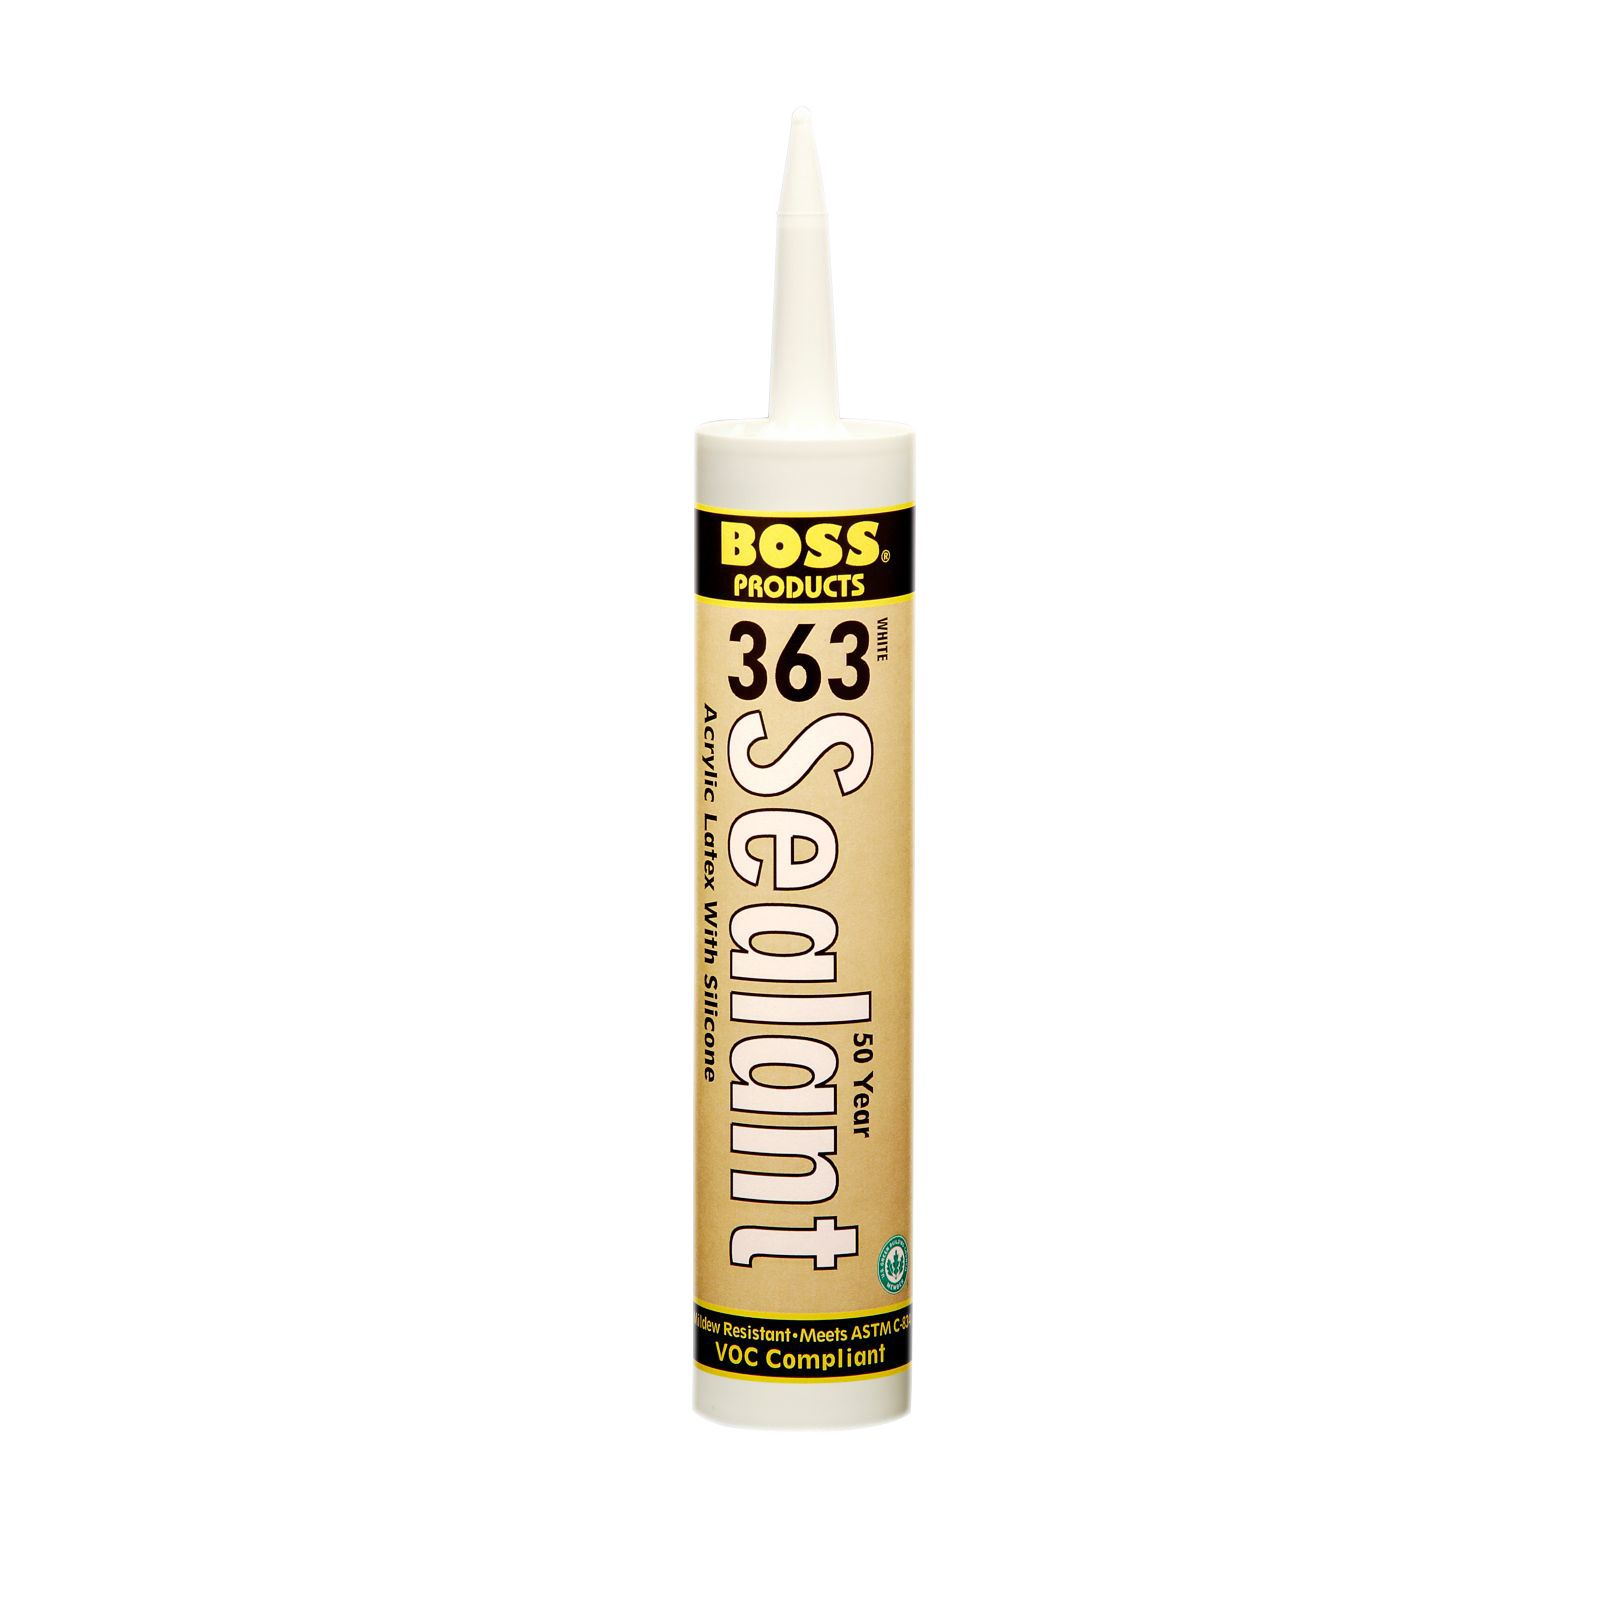 BOSS 02434CL10 -  363 50 Year Sealant Acrylic Latex Caulk With Silicone, Standard cartridge, Clear